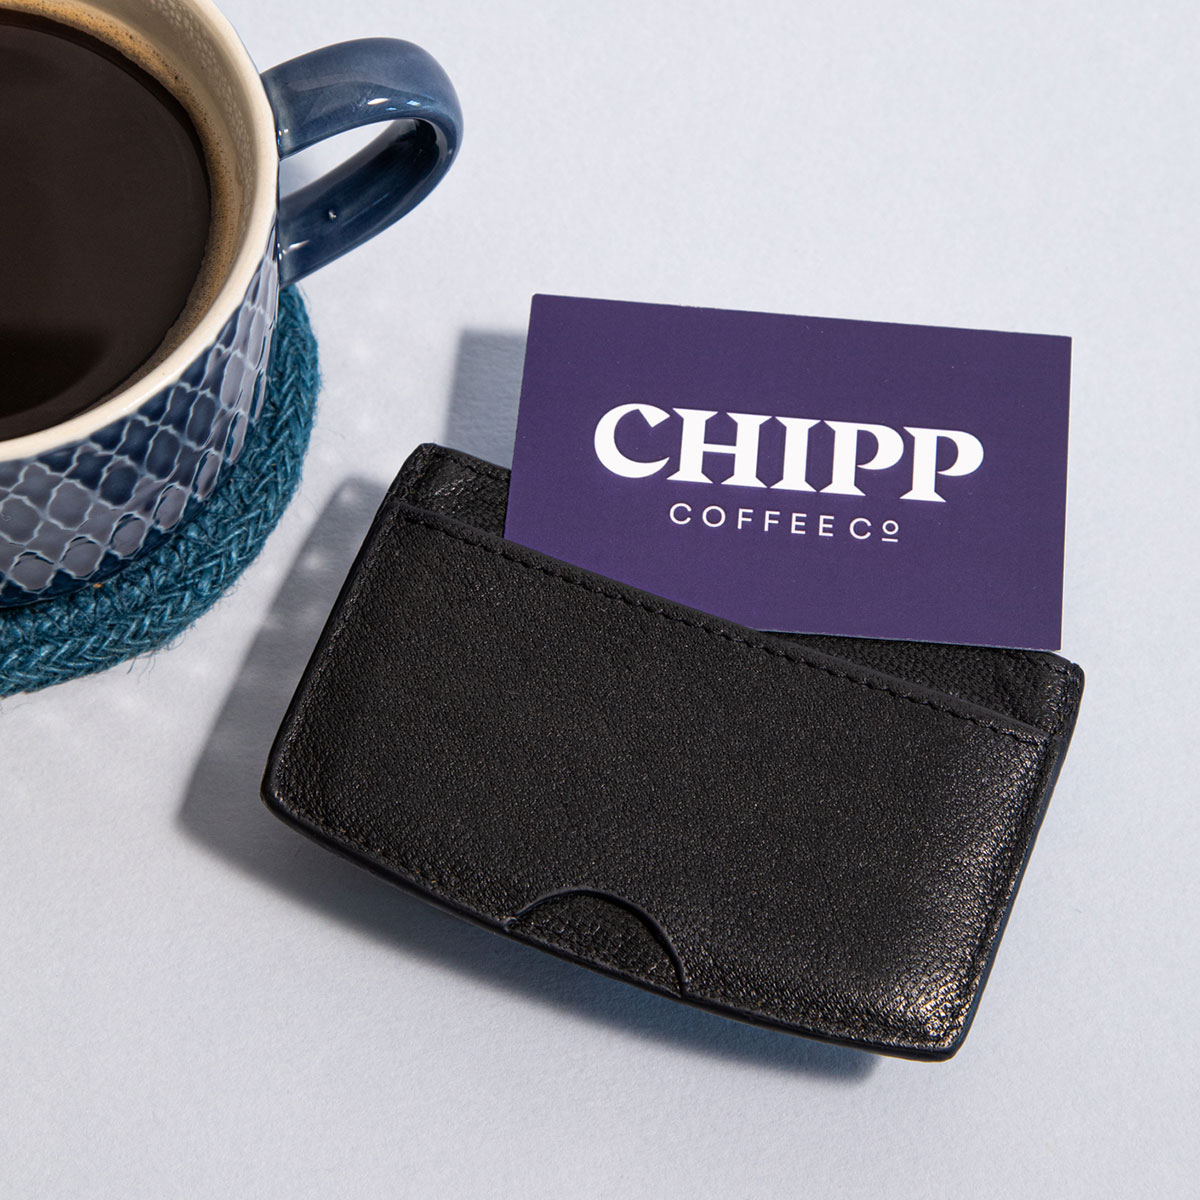 Business Card Deals - 100 for £5